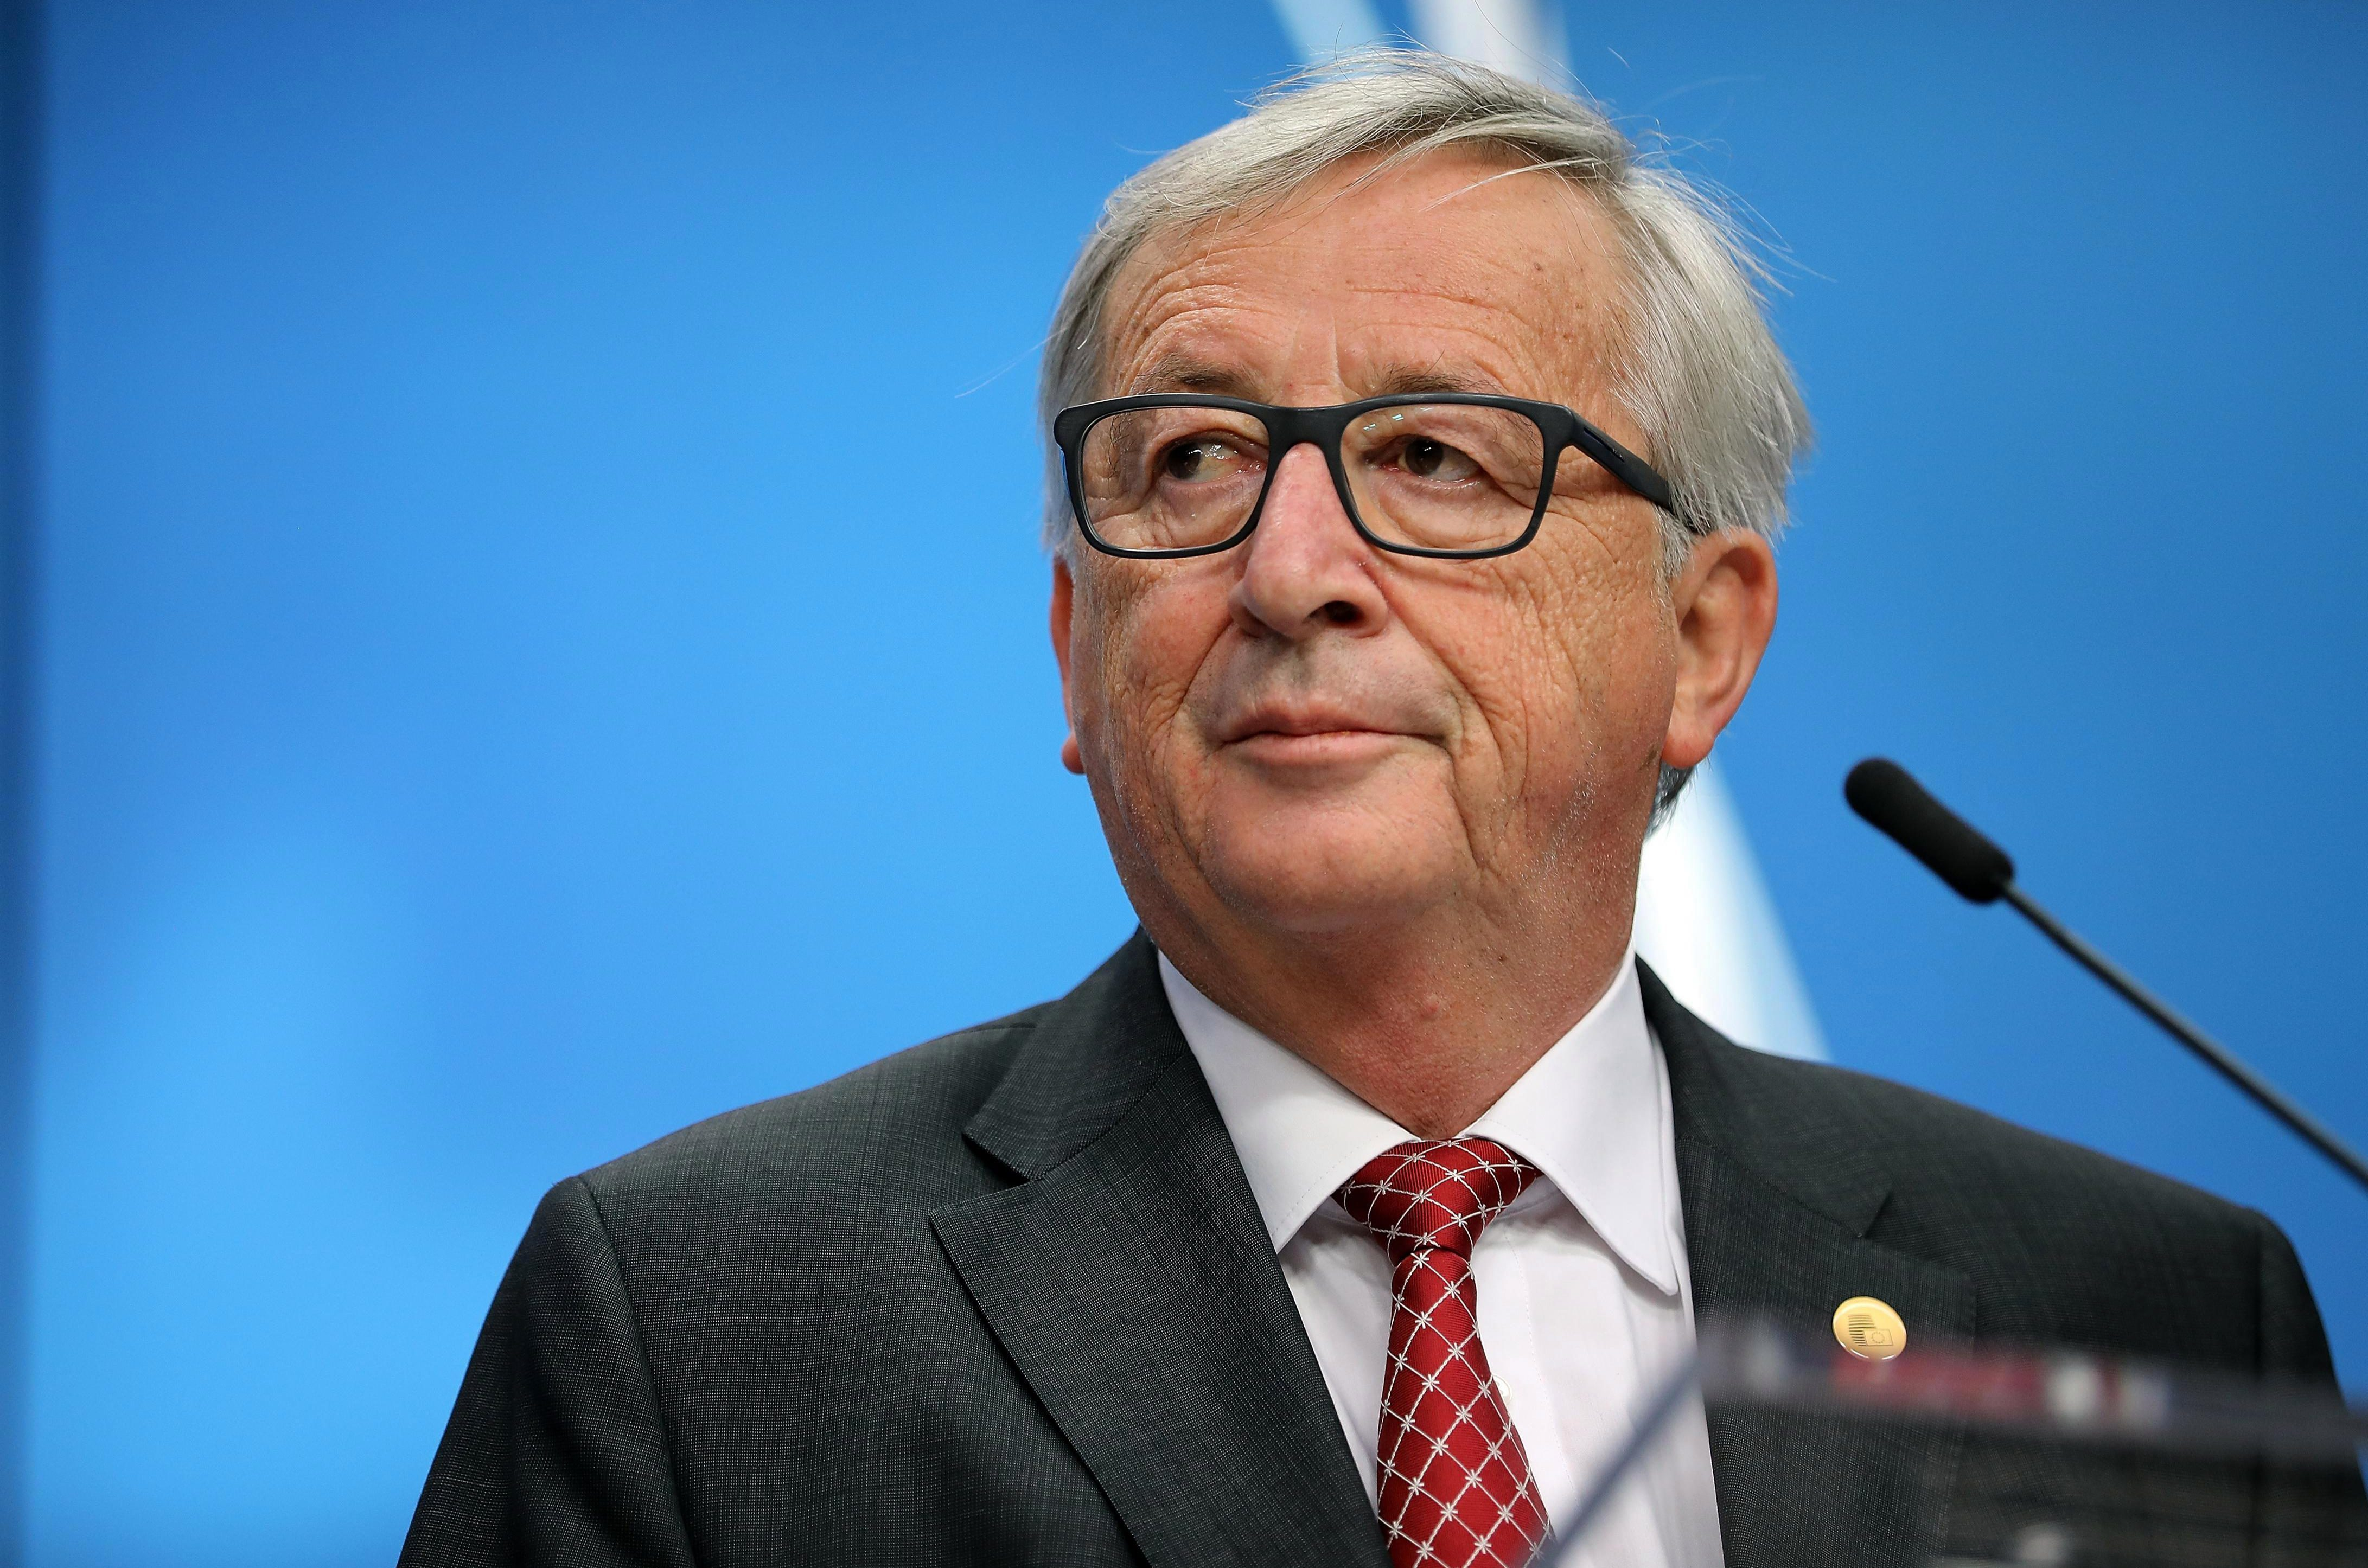 Arrogant EU chief Jean Claude Juncker says HE would make a better Prime Minister than Theresa May